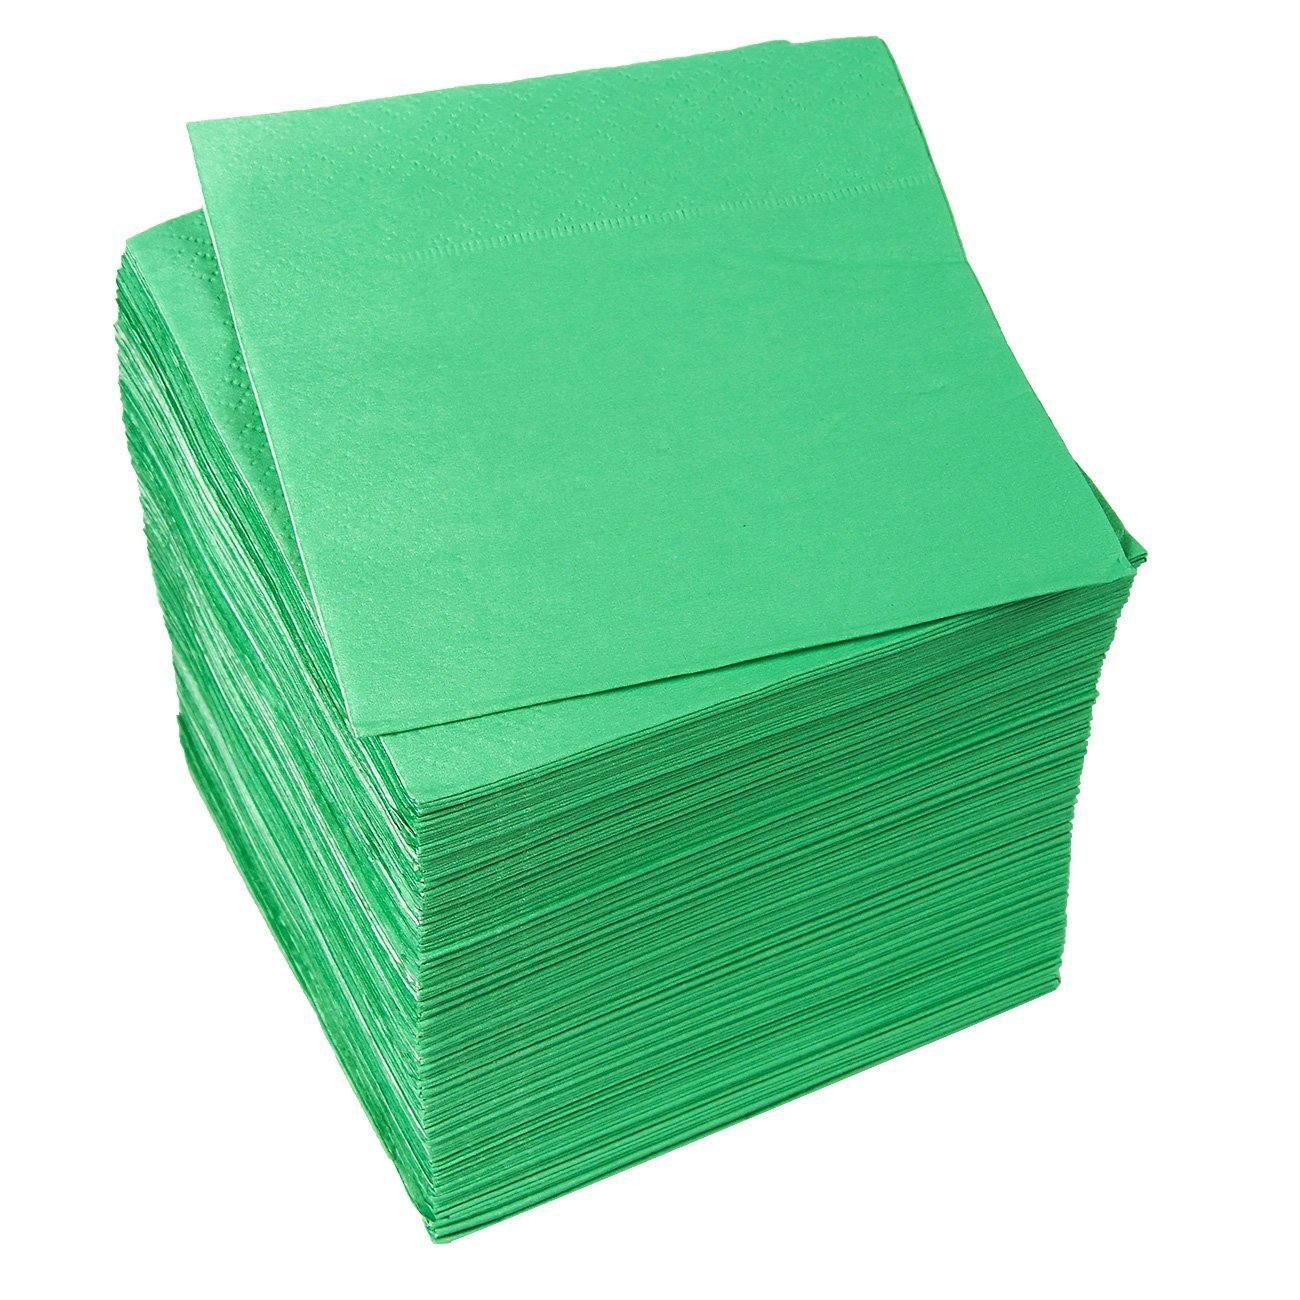 Cocktail Napkins - 200-Pack Disposable Paper Napkins, 2-Ply, Kelly Green, 5 x 5 Inches Folded by Blue Panda (Image #6)